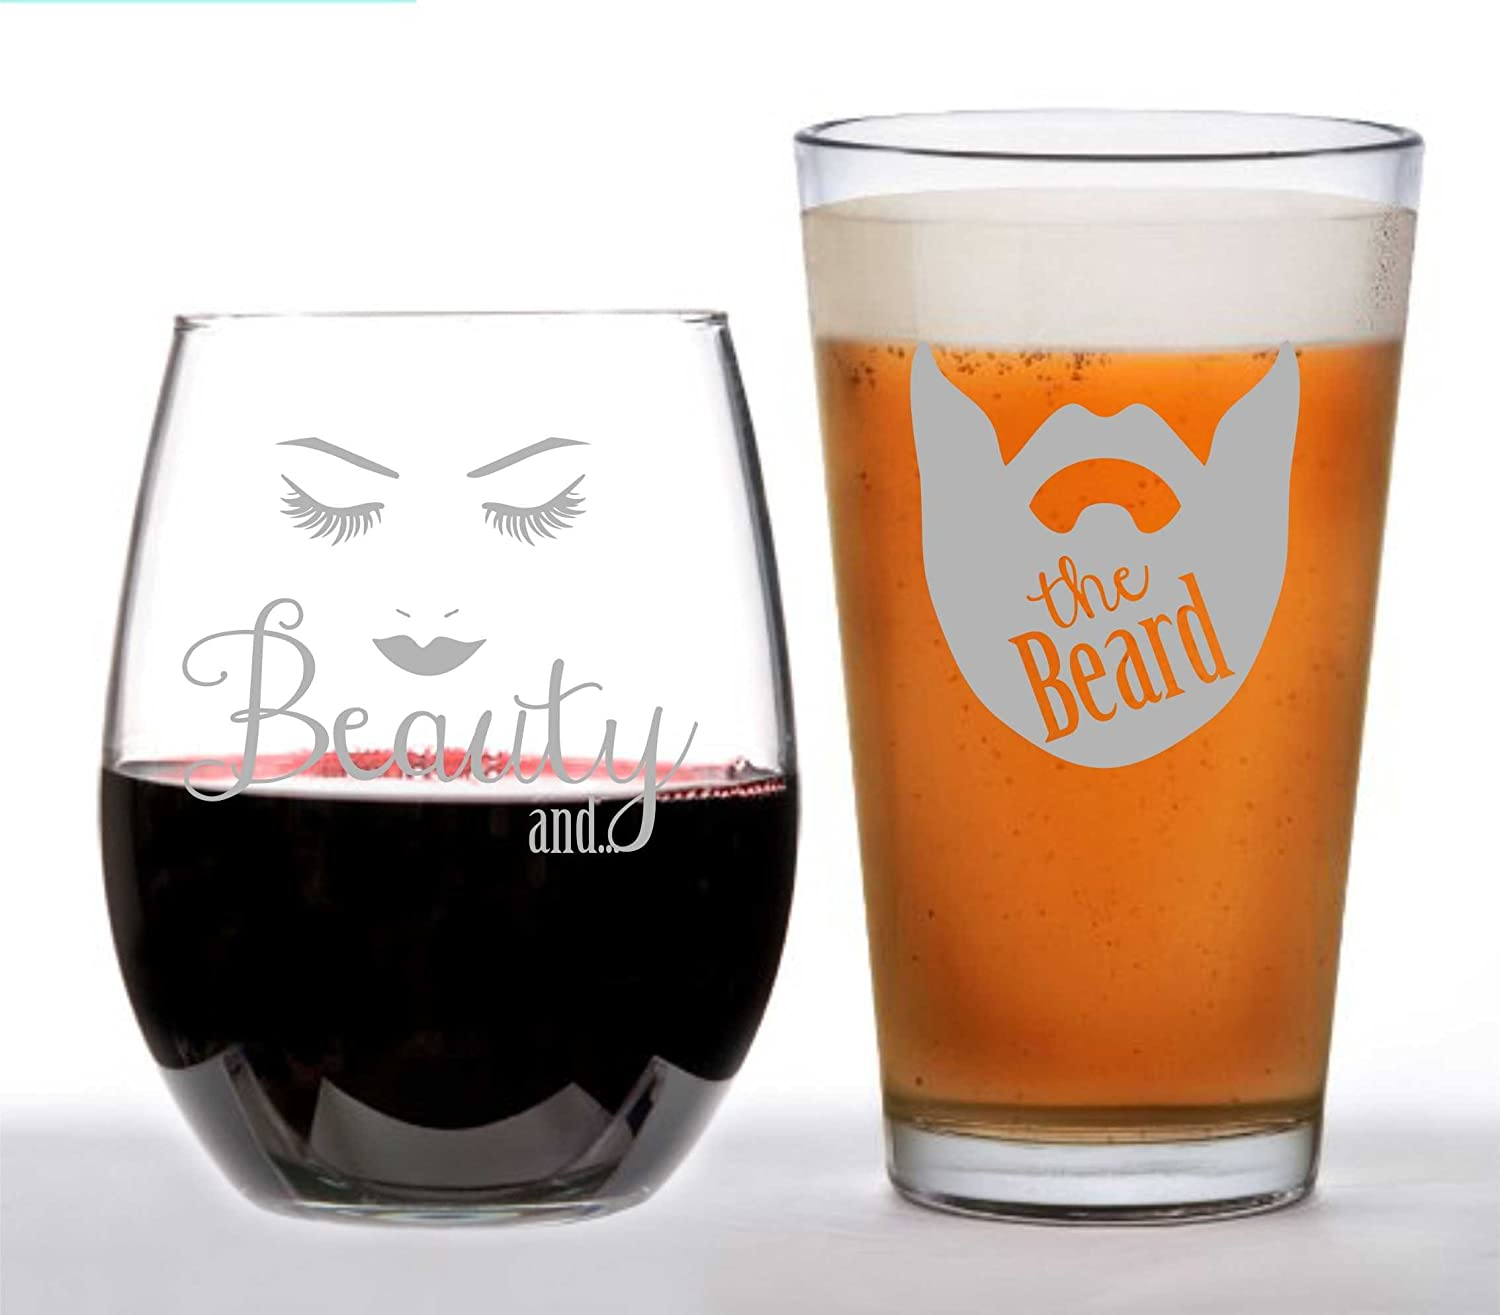 Beer Glass and Stemless Wine Glass Set (Beauty and the Beard)